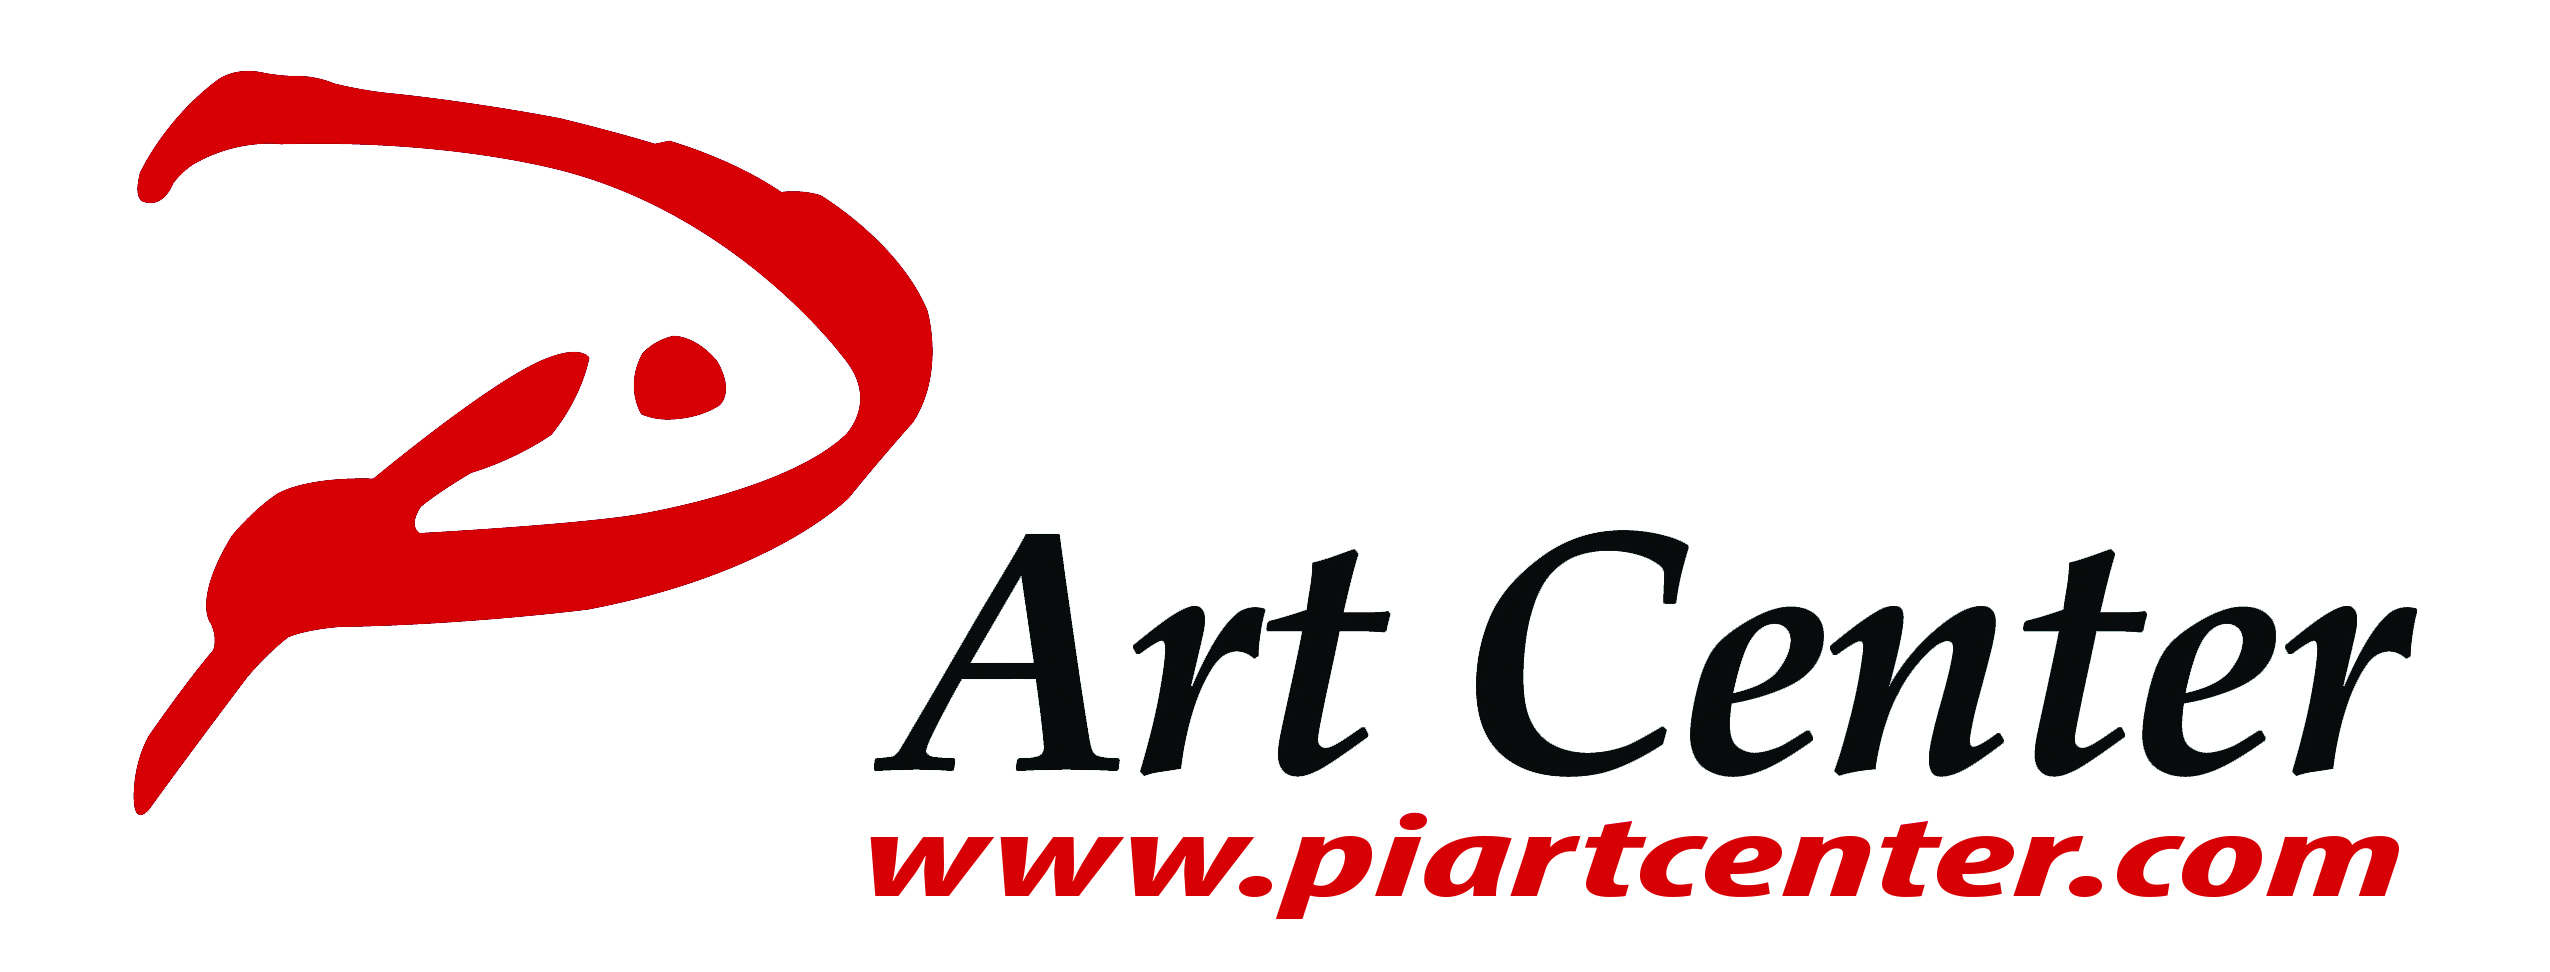 PI Art Center